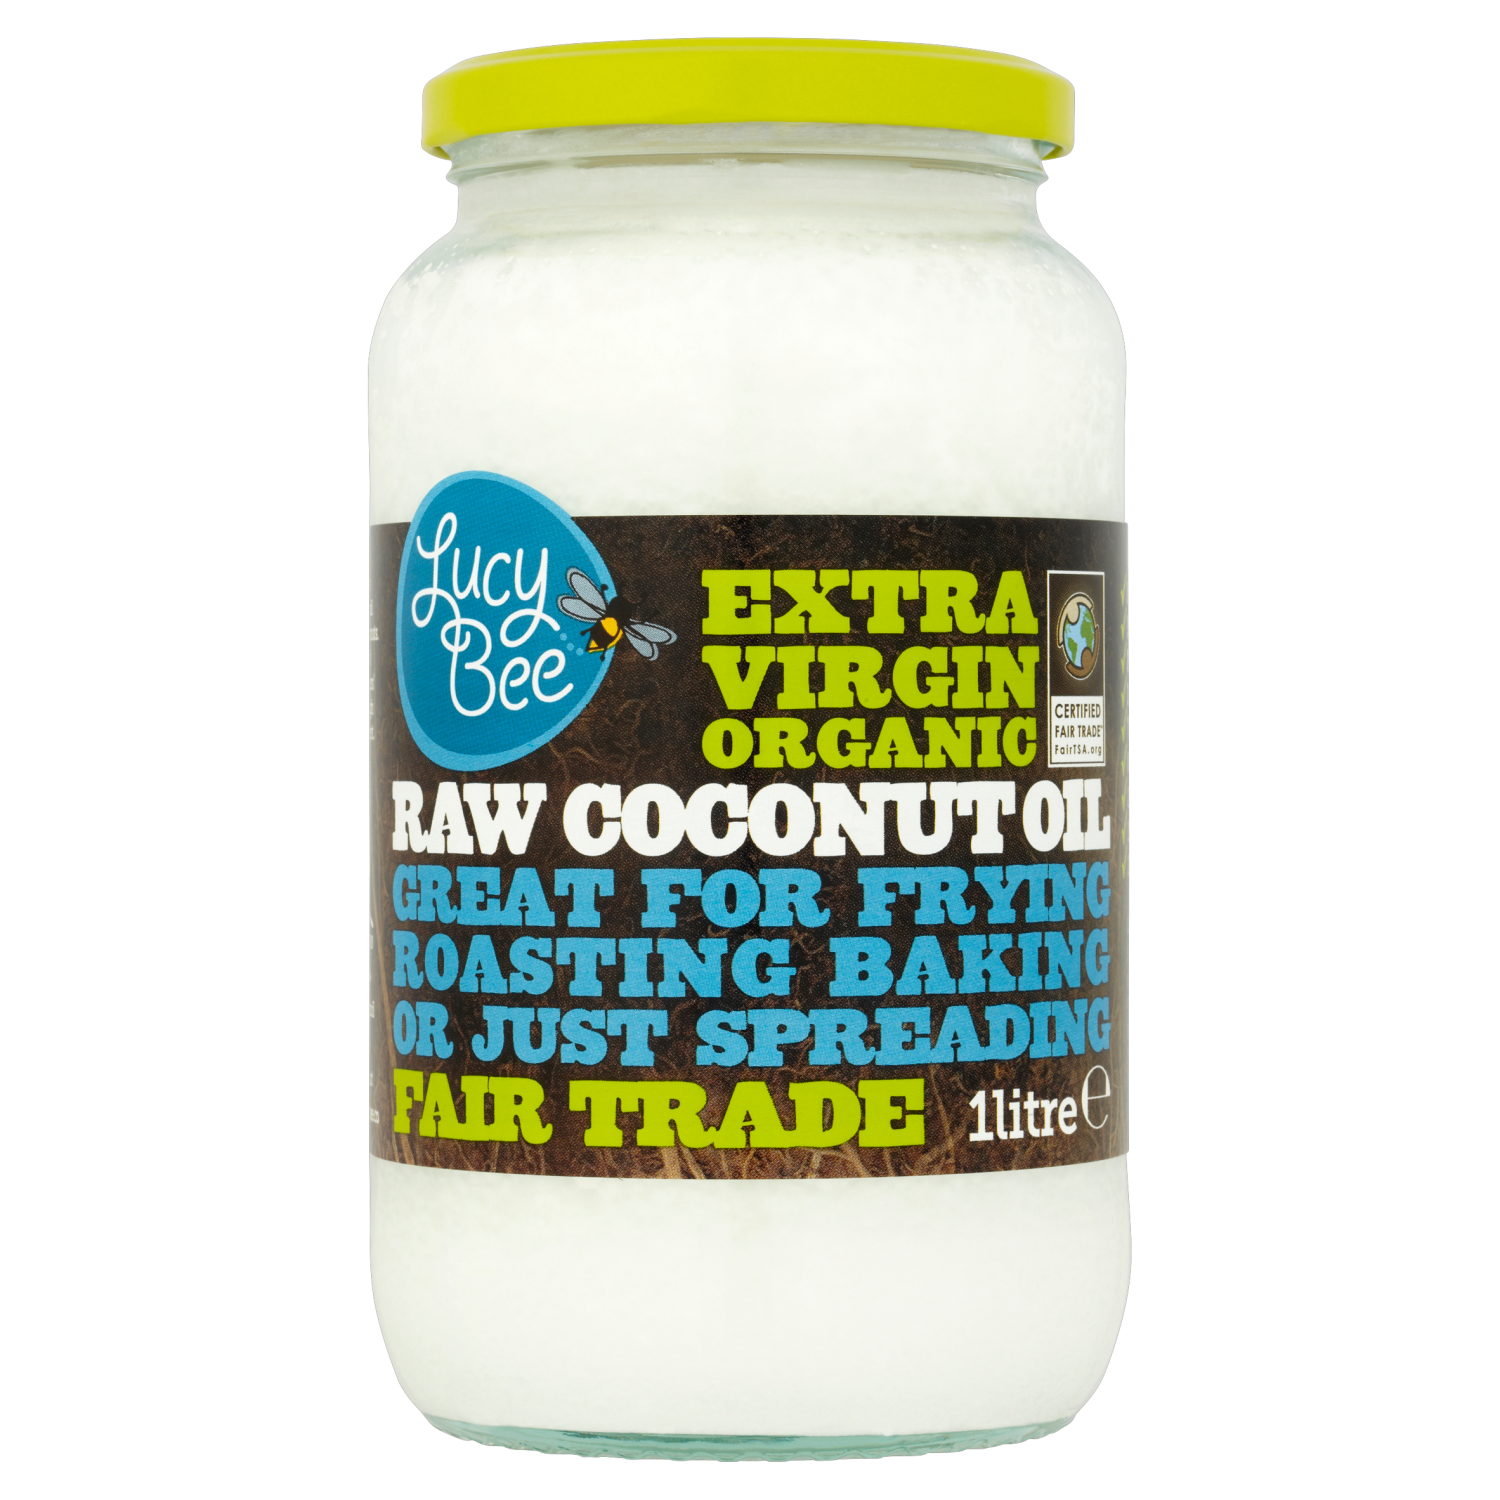 My Top 15 Uses For Coconut Oil Nutritious Roots Virgin 125 Ml Lucy Bee Raw Organic 1 Litre Favourite Is Extra